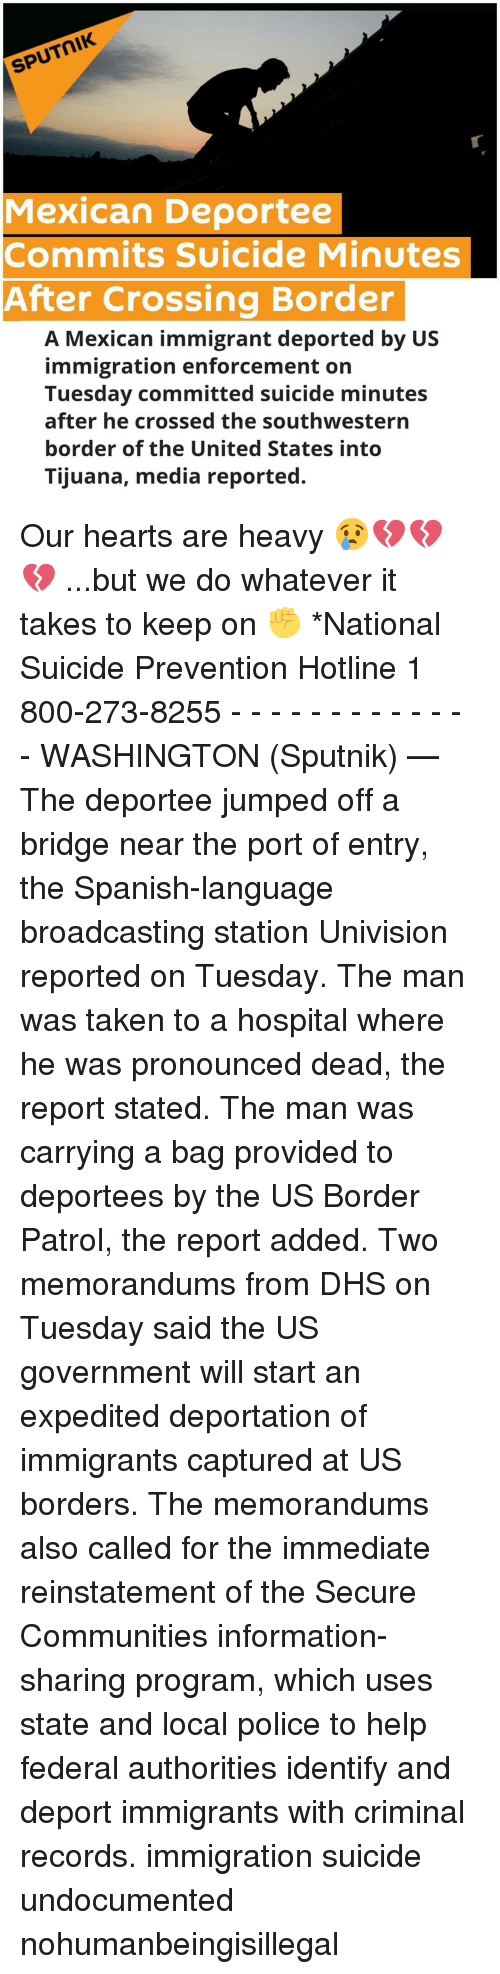 Enforcer: SPUTNIK  Mexican Deportee  Commits Suicide Minutes  After Crossing Border  A Mexican immigrant deported by US  immigration enforcement on  Tuesday committed suicide minutes  after he crossed the southwestern  border of the United States into  Tijuana, media reported. Our hearts are heavy 😢💔💔💔 ...but we do whatever it takes to keep on ✊ *National Suicide Prevention Hotline 1 800-273-8255 - - - - - - - - - - - - - WASHINGTON (Sputnik) — The deportee jumped off a bridge near the port of entry, the Spanish-language broadcasting station Univision reported on Tuesday. The man was taken to a hospital where he was pronounced dead, the report stated. The man was carrying a bag provided to deportees by the US Border Patrol, the report added. Two memorandums from DHS on Tuesday said the US government will start an expedited deportation of immigrants captured at US borders. The memorandums also called for the immediate reinstatement of the Secure Communities information-sharing program, which uses state and local police to help federal authorities identify and deport immigrants with criminal records. immigration suicide undocumented nohumanbeingisillegal